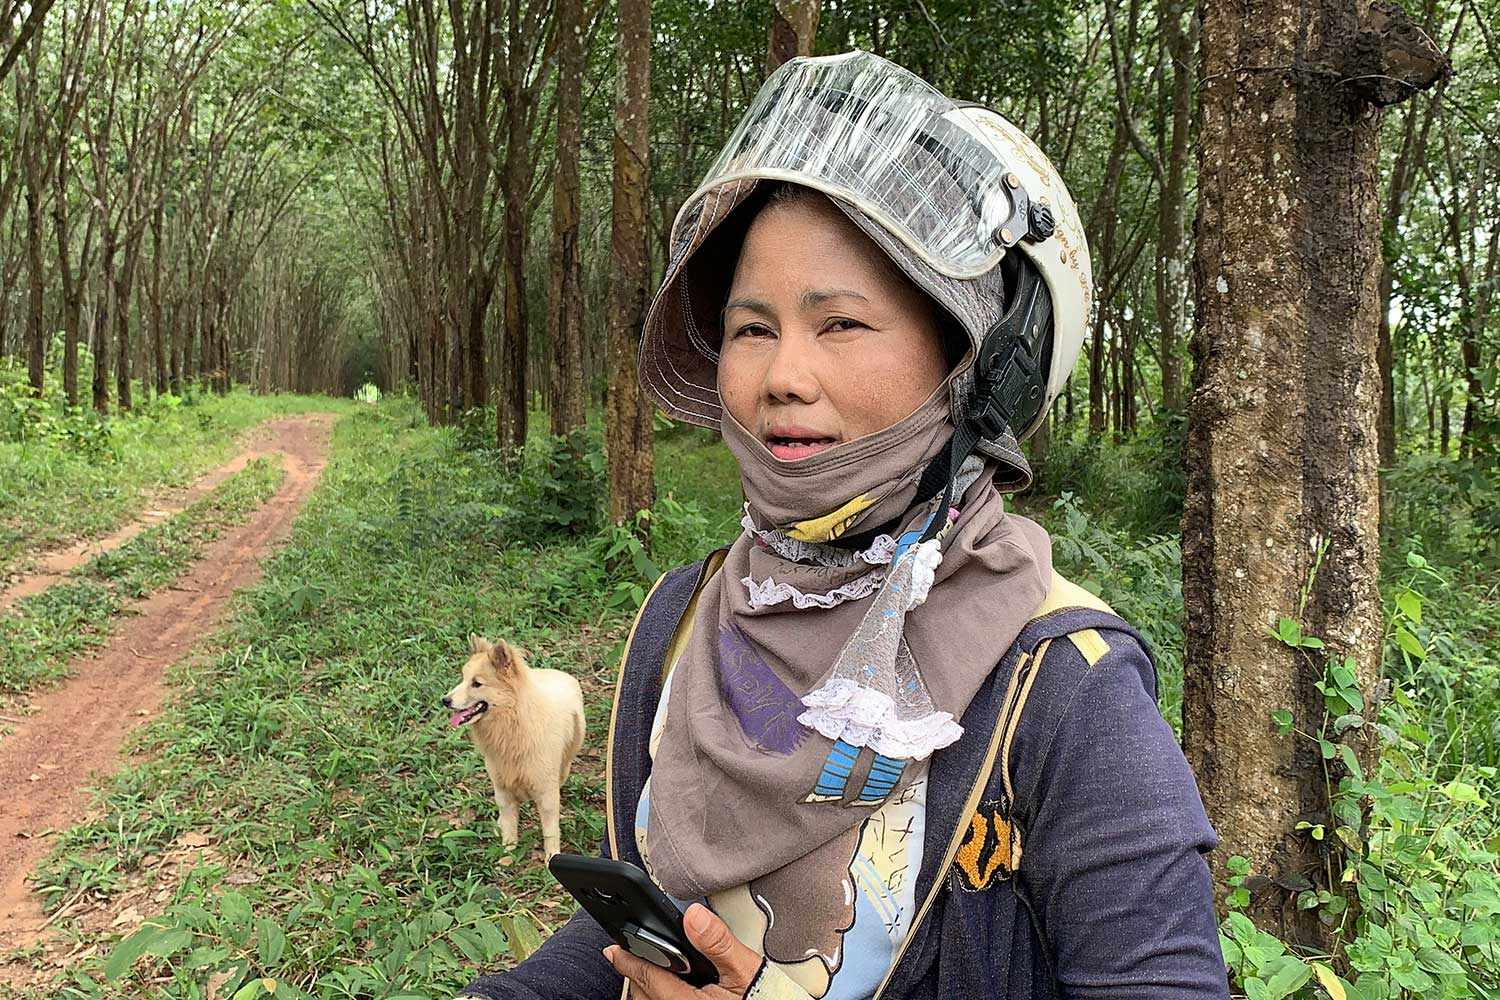 Ms Chayanan Sornsewanee, 50, who rescued a female Bang Kaew dog falling from a vehicle in Bang Klam district of Songkhla two weeks ago, says the dog is waiting for its owner. (Photo by Assawin Pakkawan)